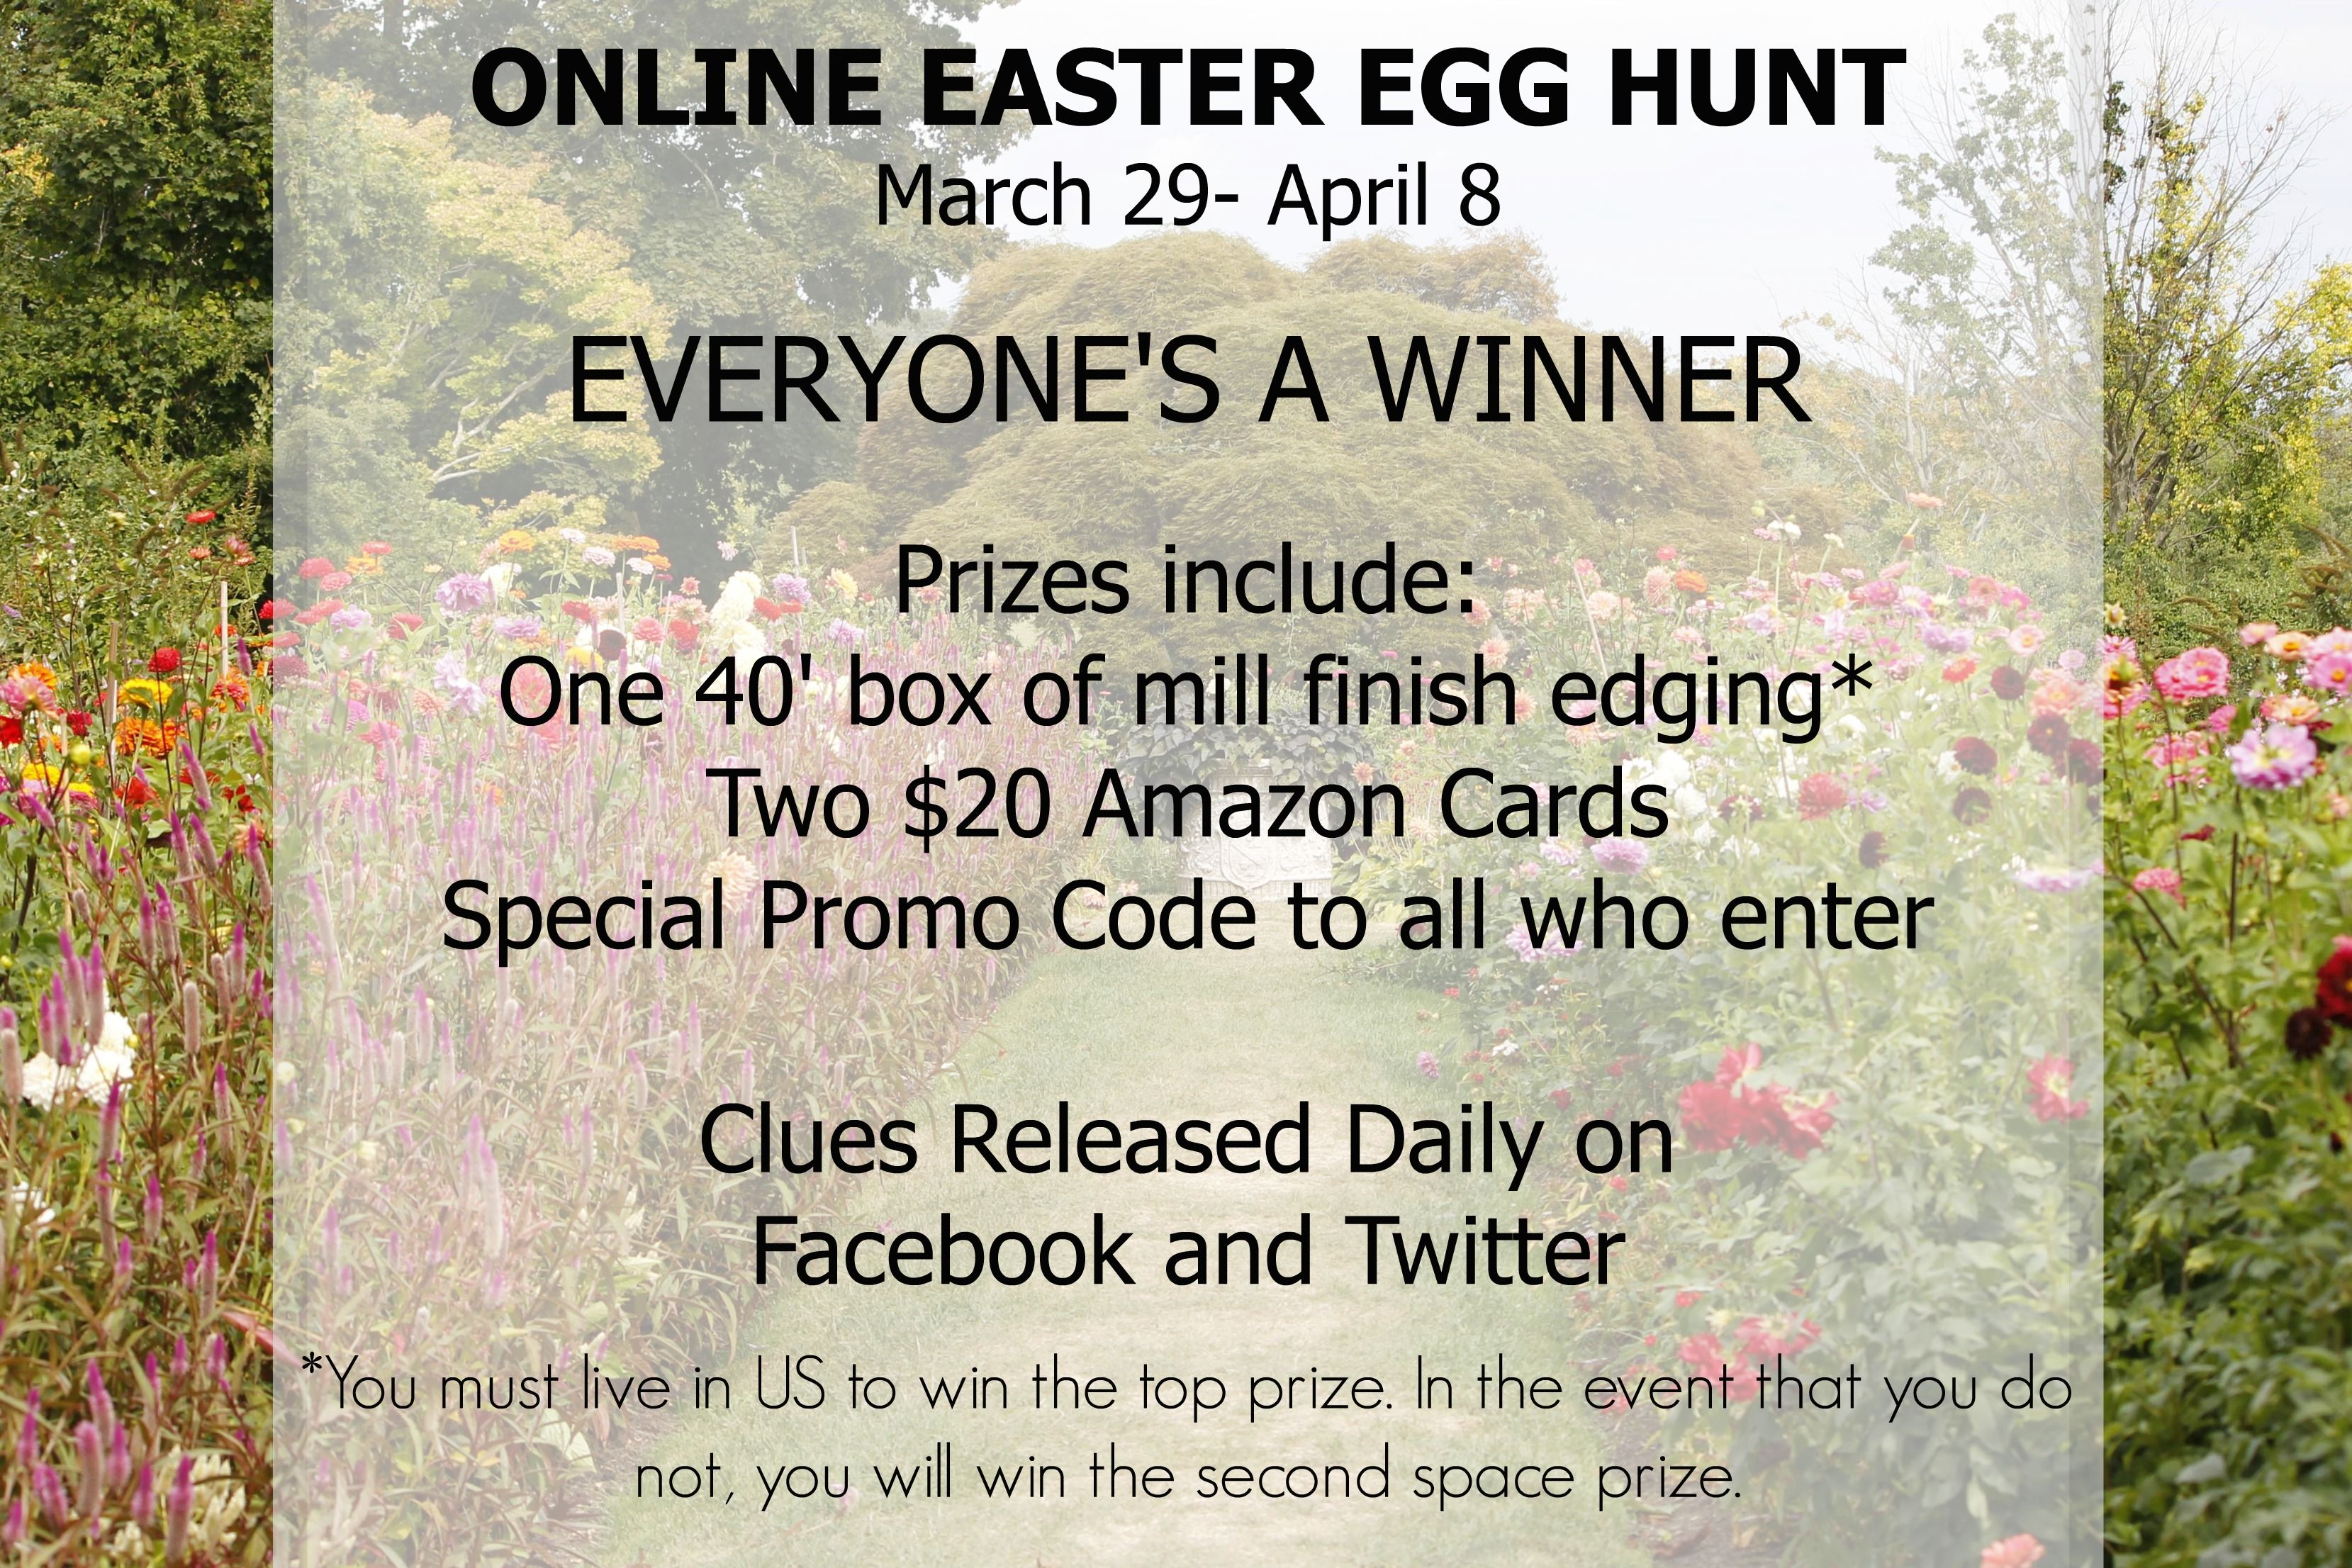 Everyone is a Winner! Who's In? http://ow.ly/Kyni5 #EasterEggHunt #Contest #Win #Free